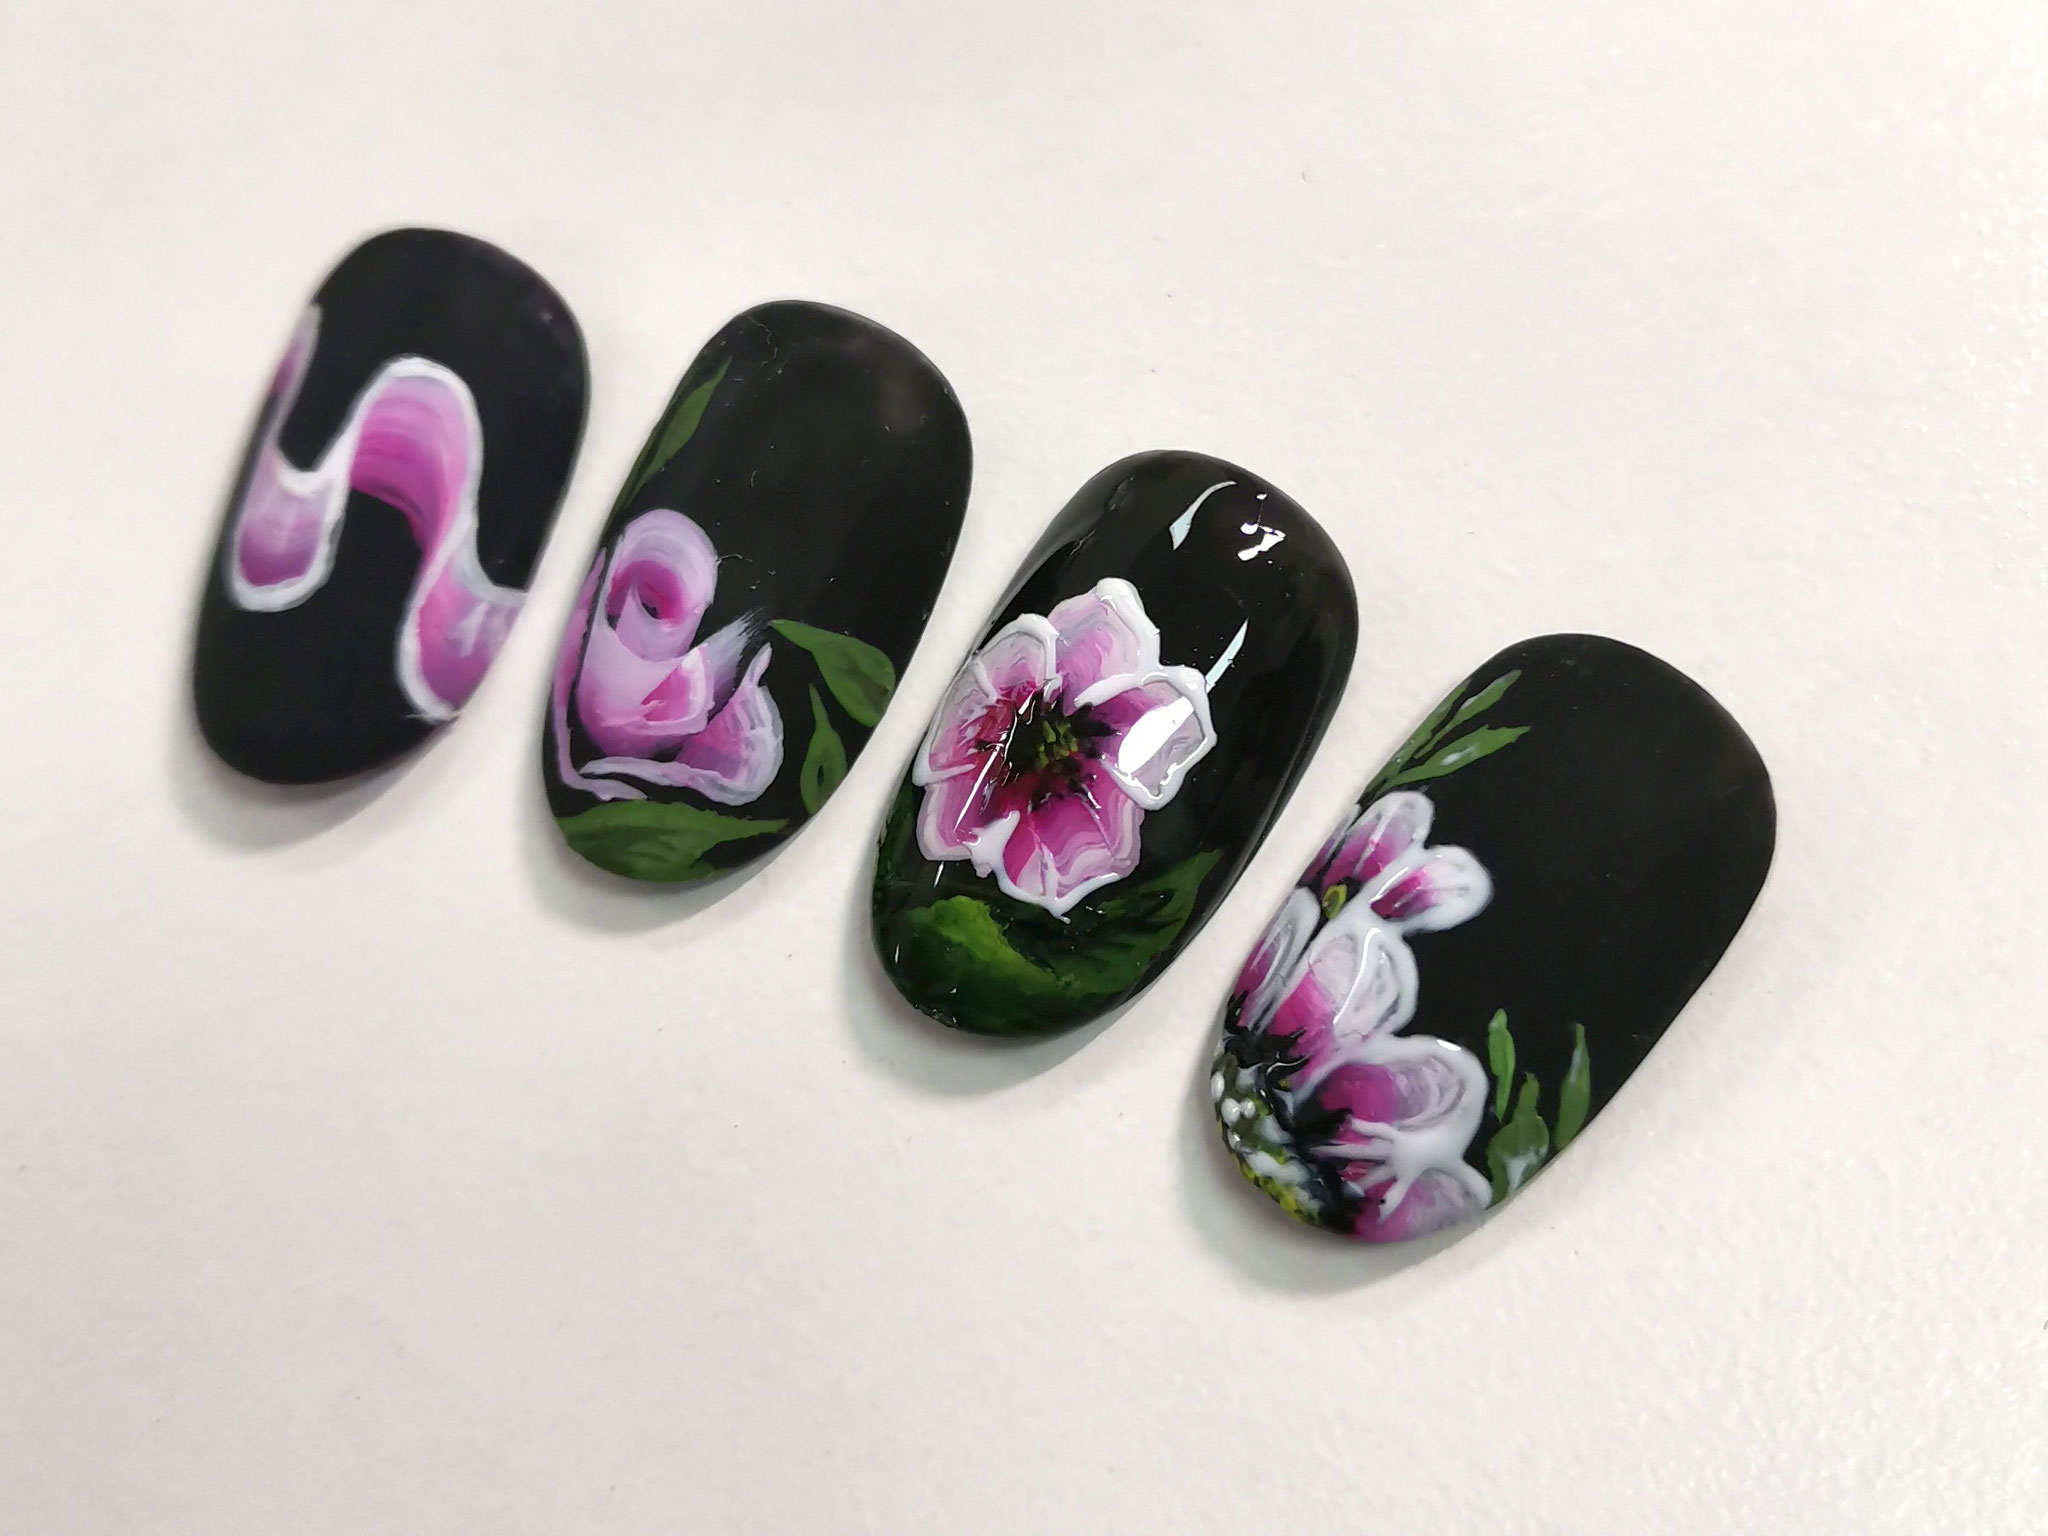 NailArt One Stroke Schulung in der NailsAcademy in Wien 21